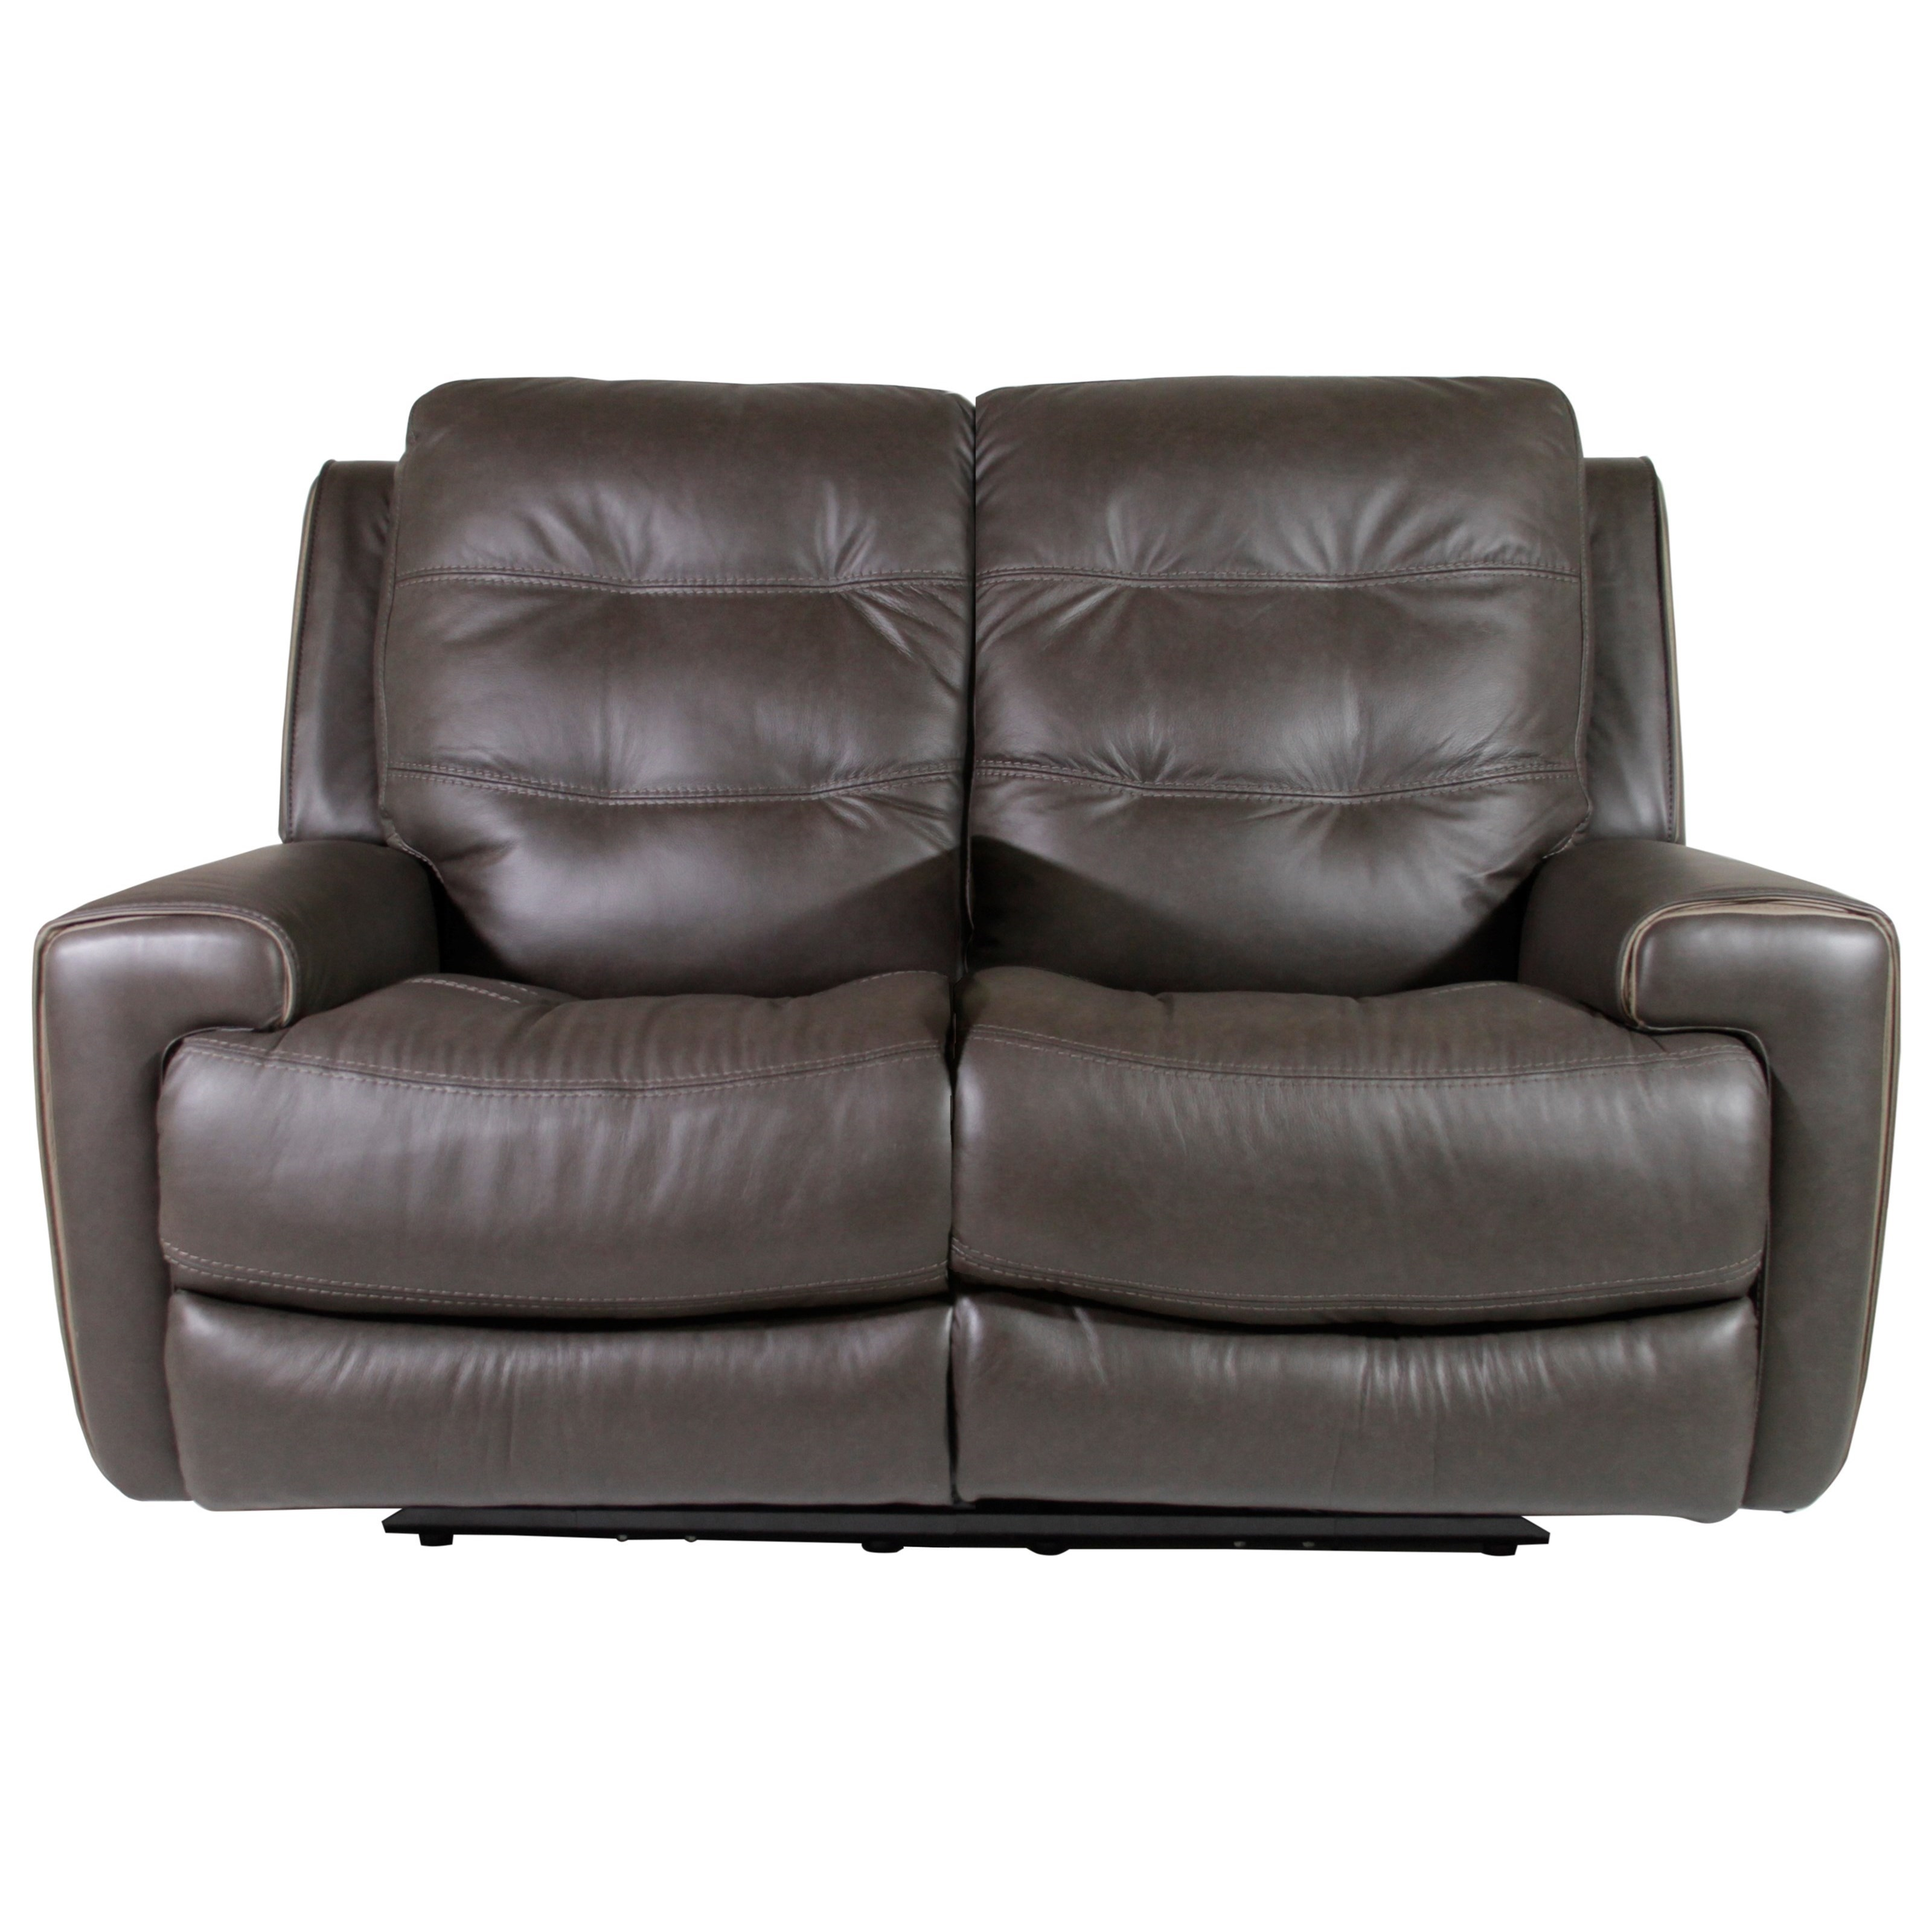 Latitudes-Wicklow Power Reclining Loveseat with Power Headrest by Flexsteel at Northeast Factory Direct